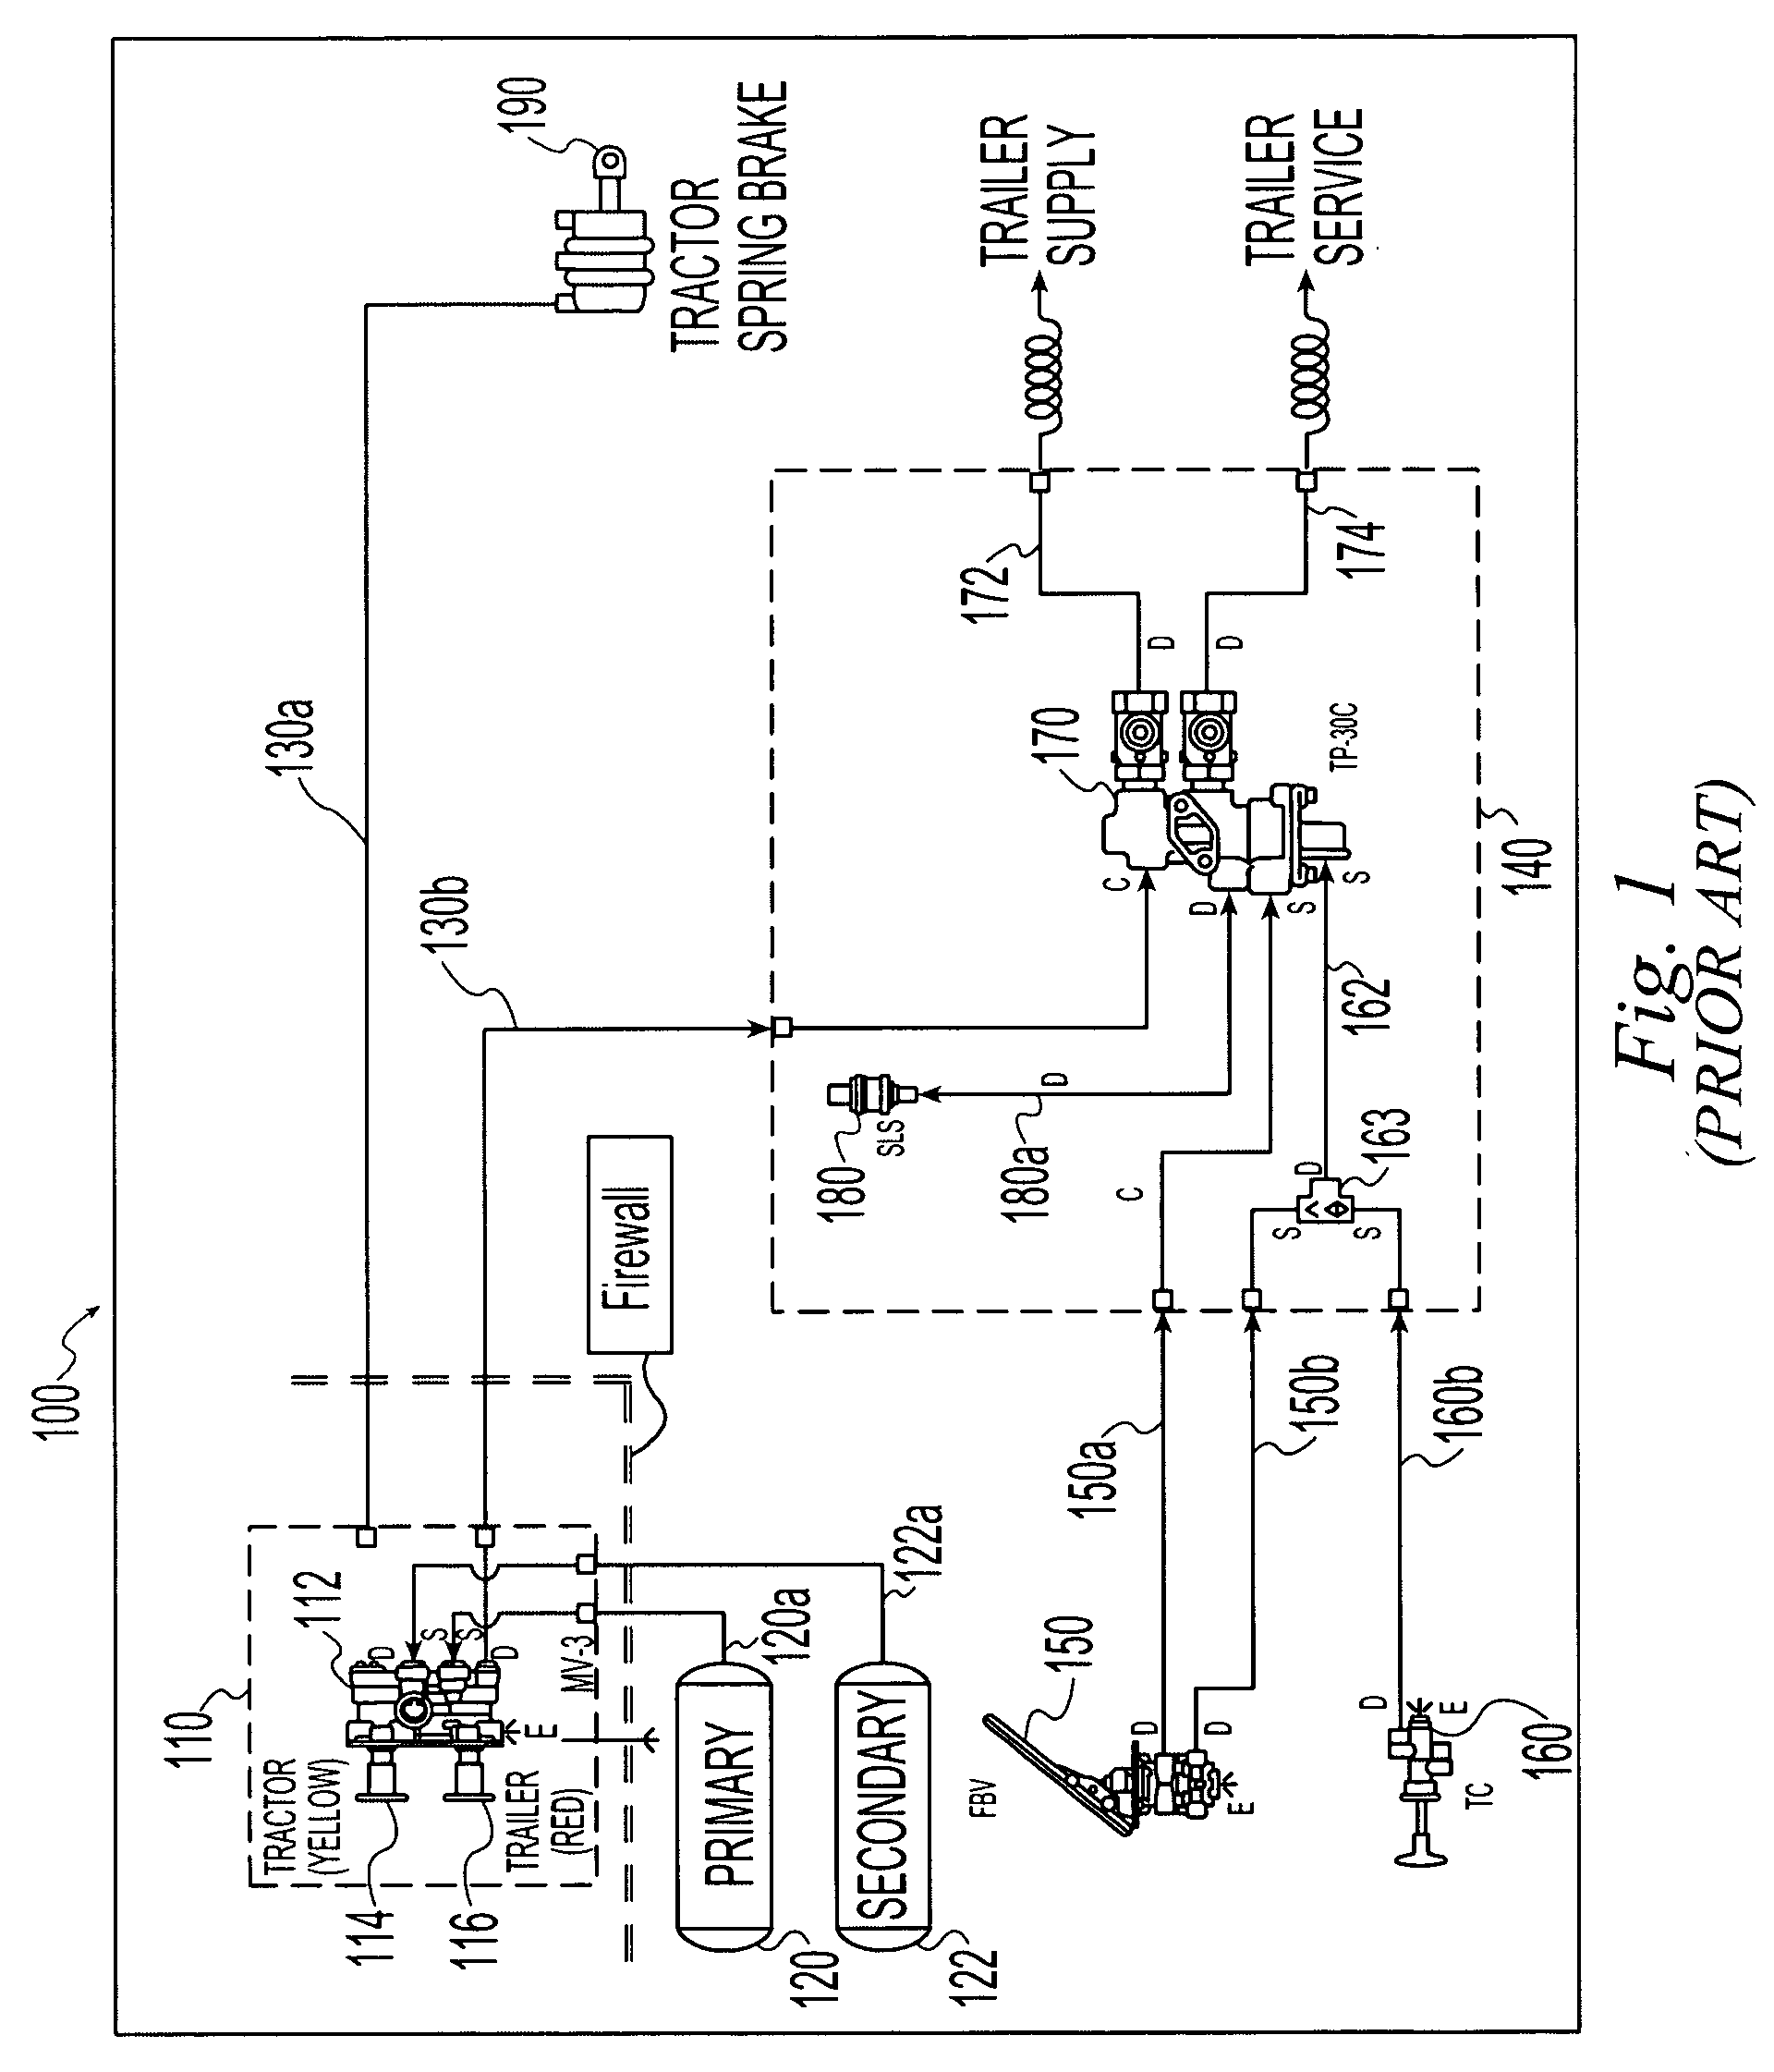 US20040187674A1 20040930 D00001?resize=840%2C981 wabco abs wiring diagram 97 fl70 fuse box diagram, solenoid wabco abs wiring diagram at bakdesigns.co